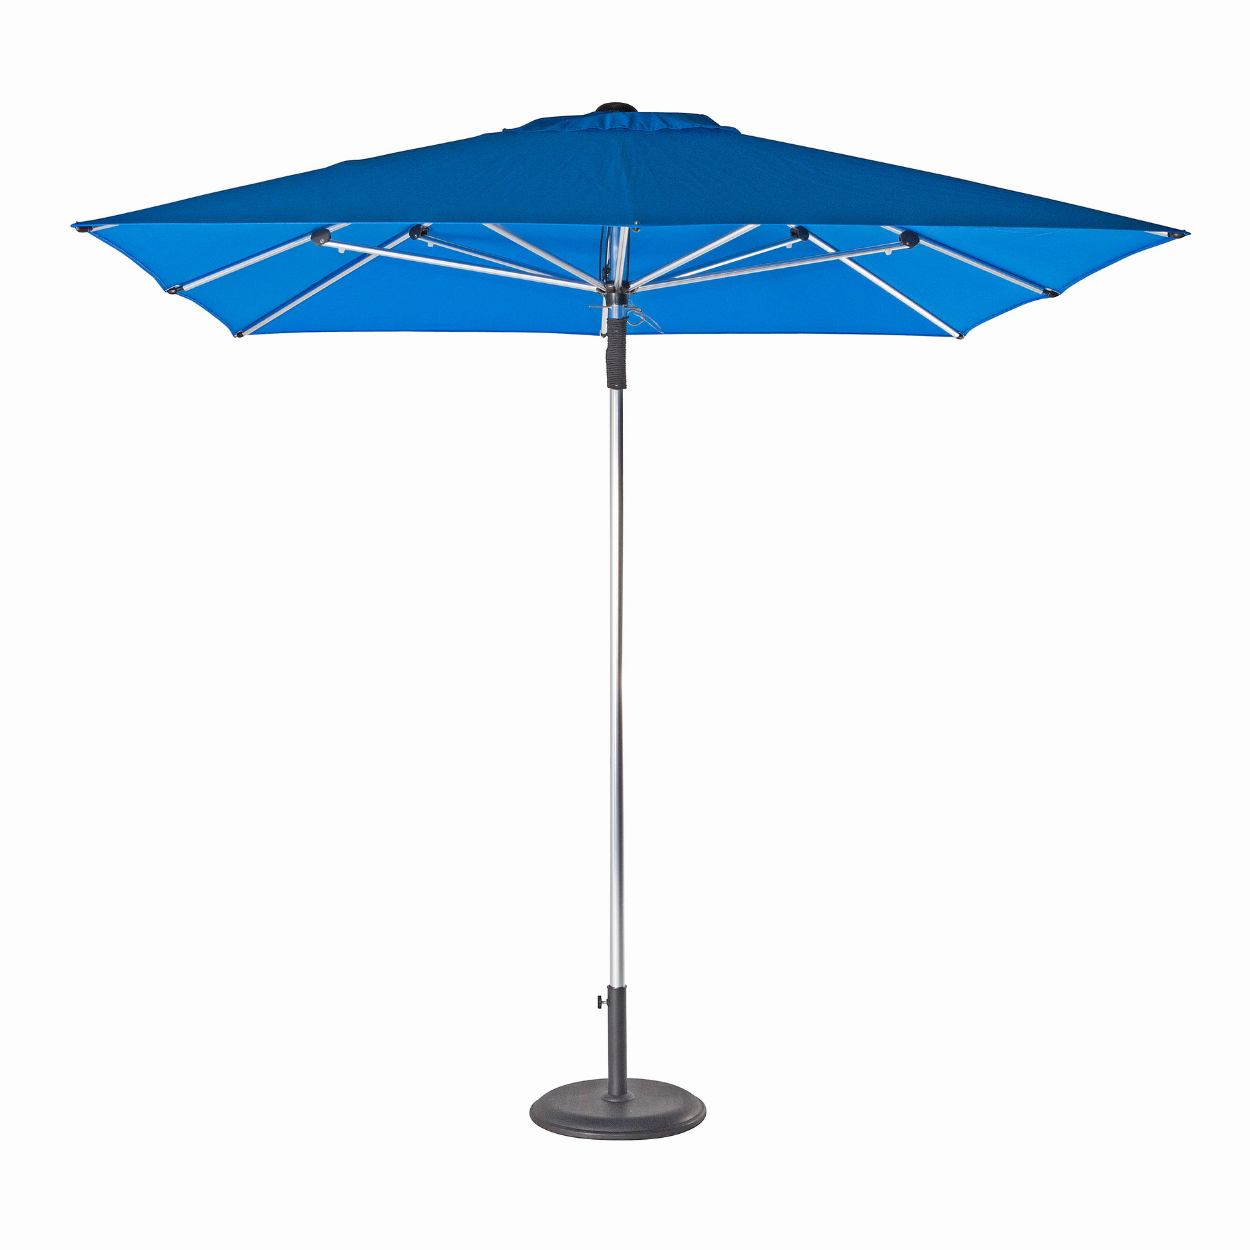 Coolum 2.2m Square Umbrella